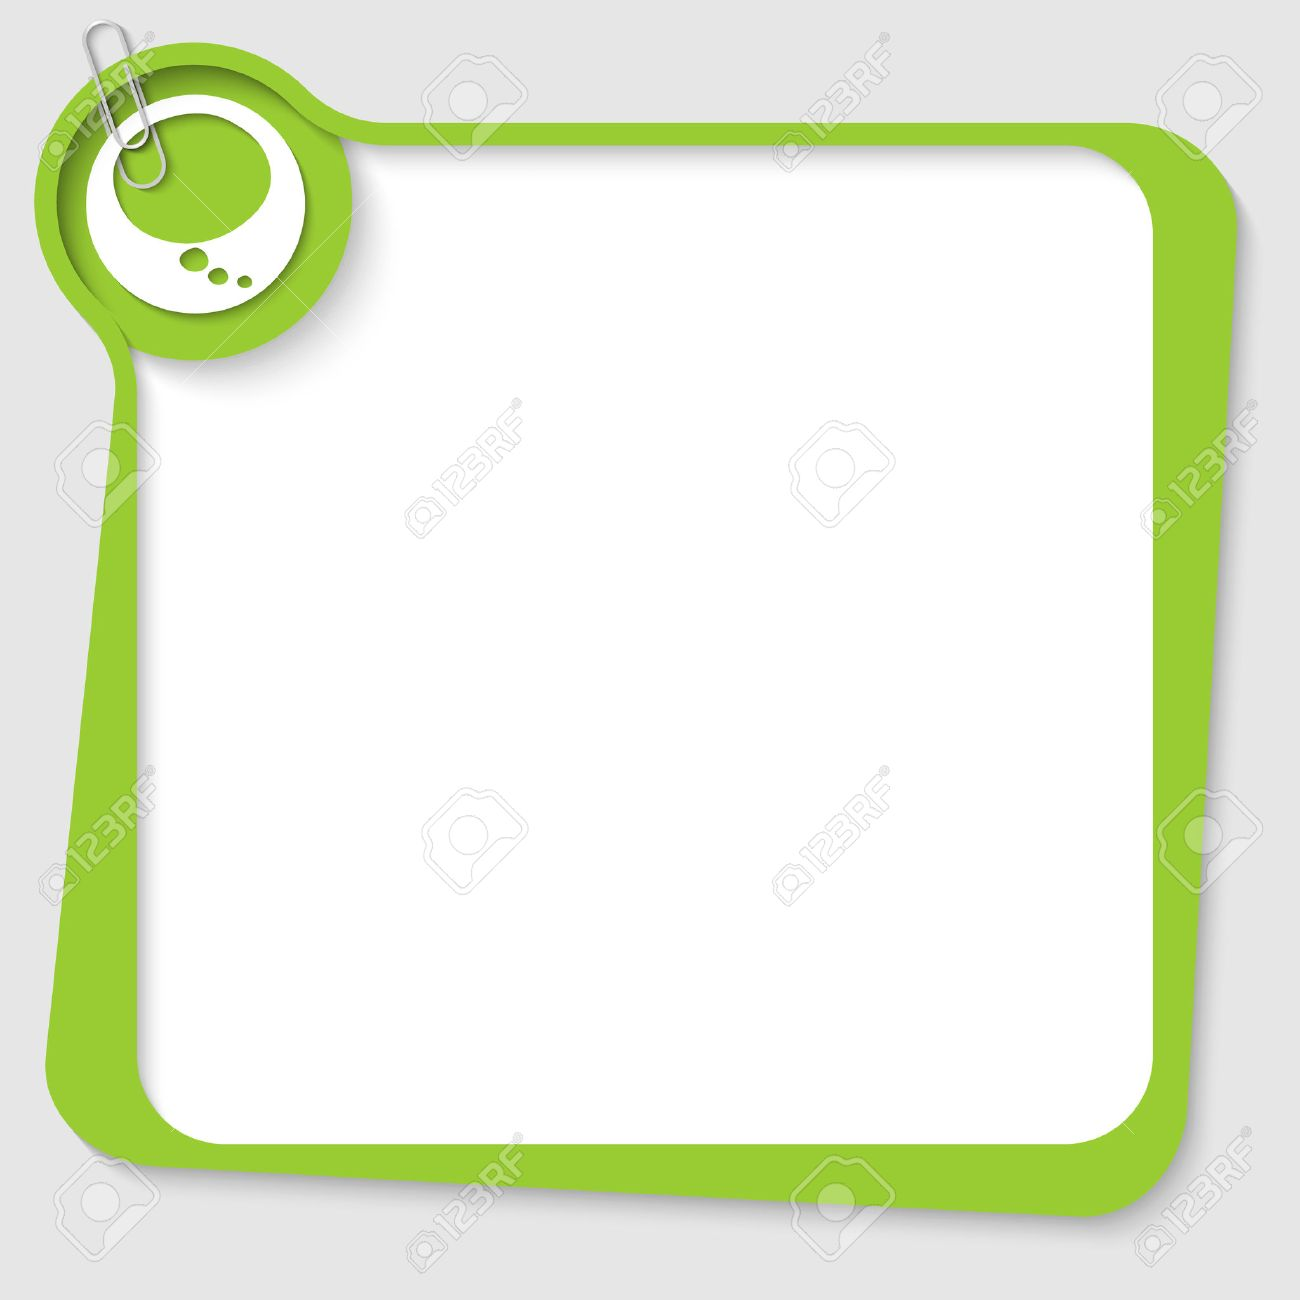 Blank Text Message Bubble Vector - green blank text box